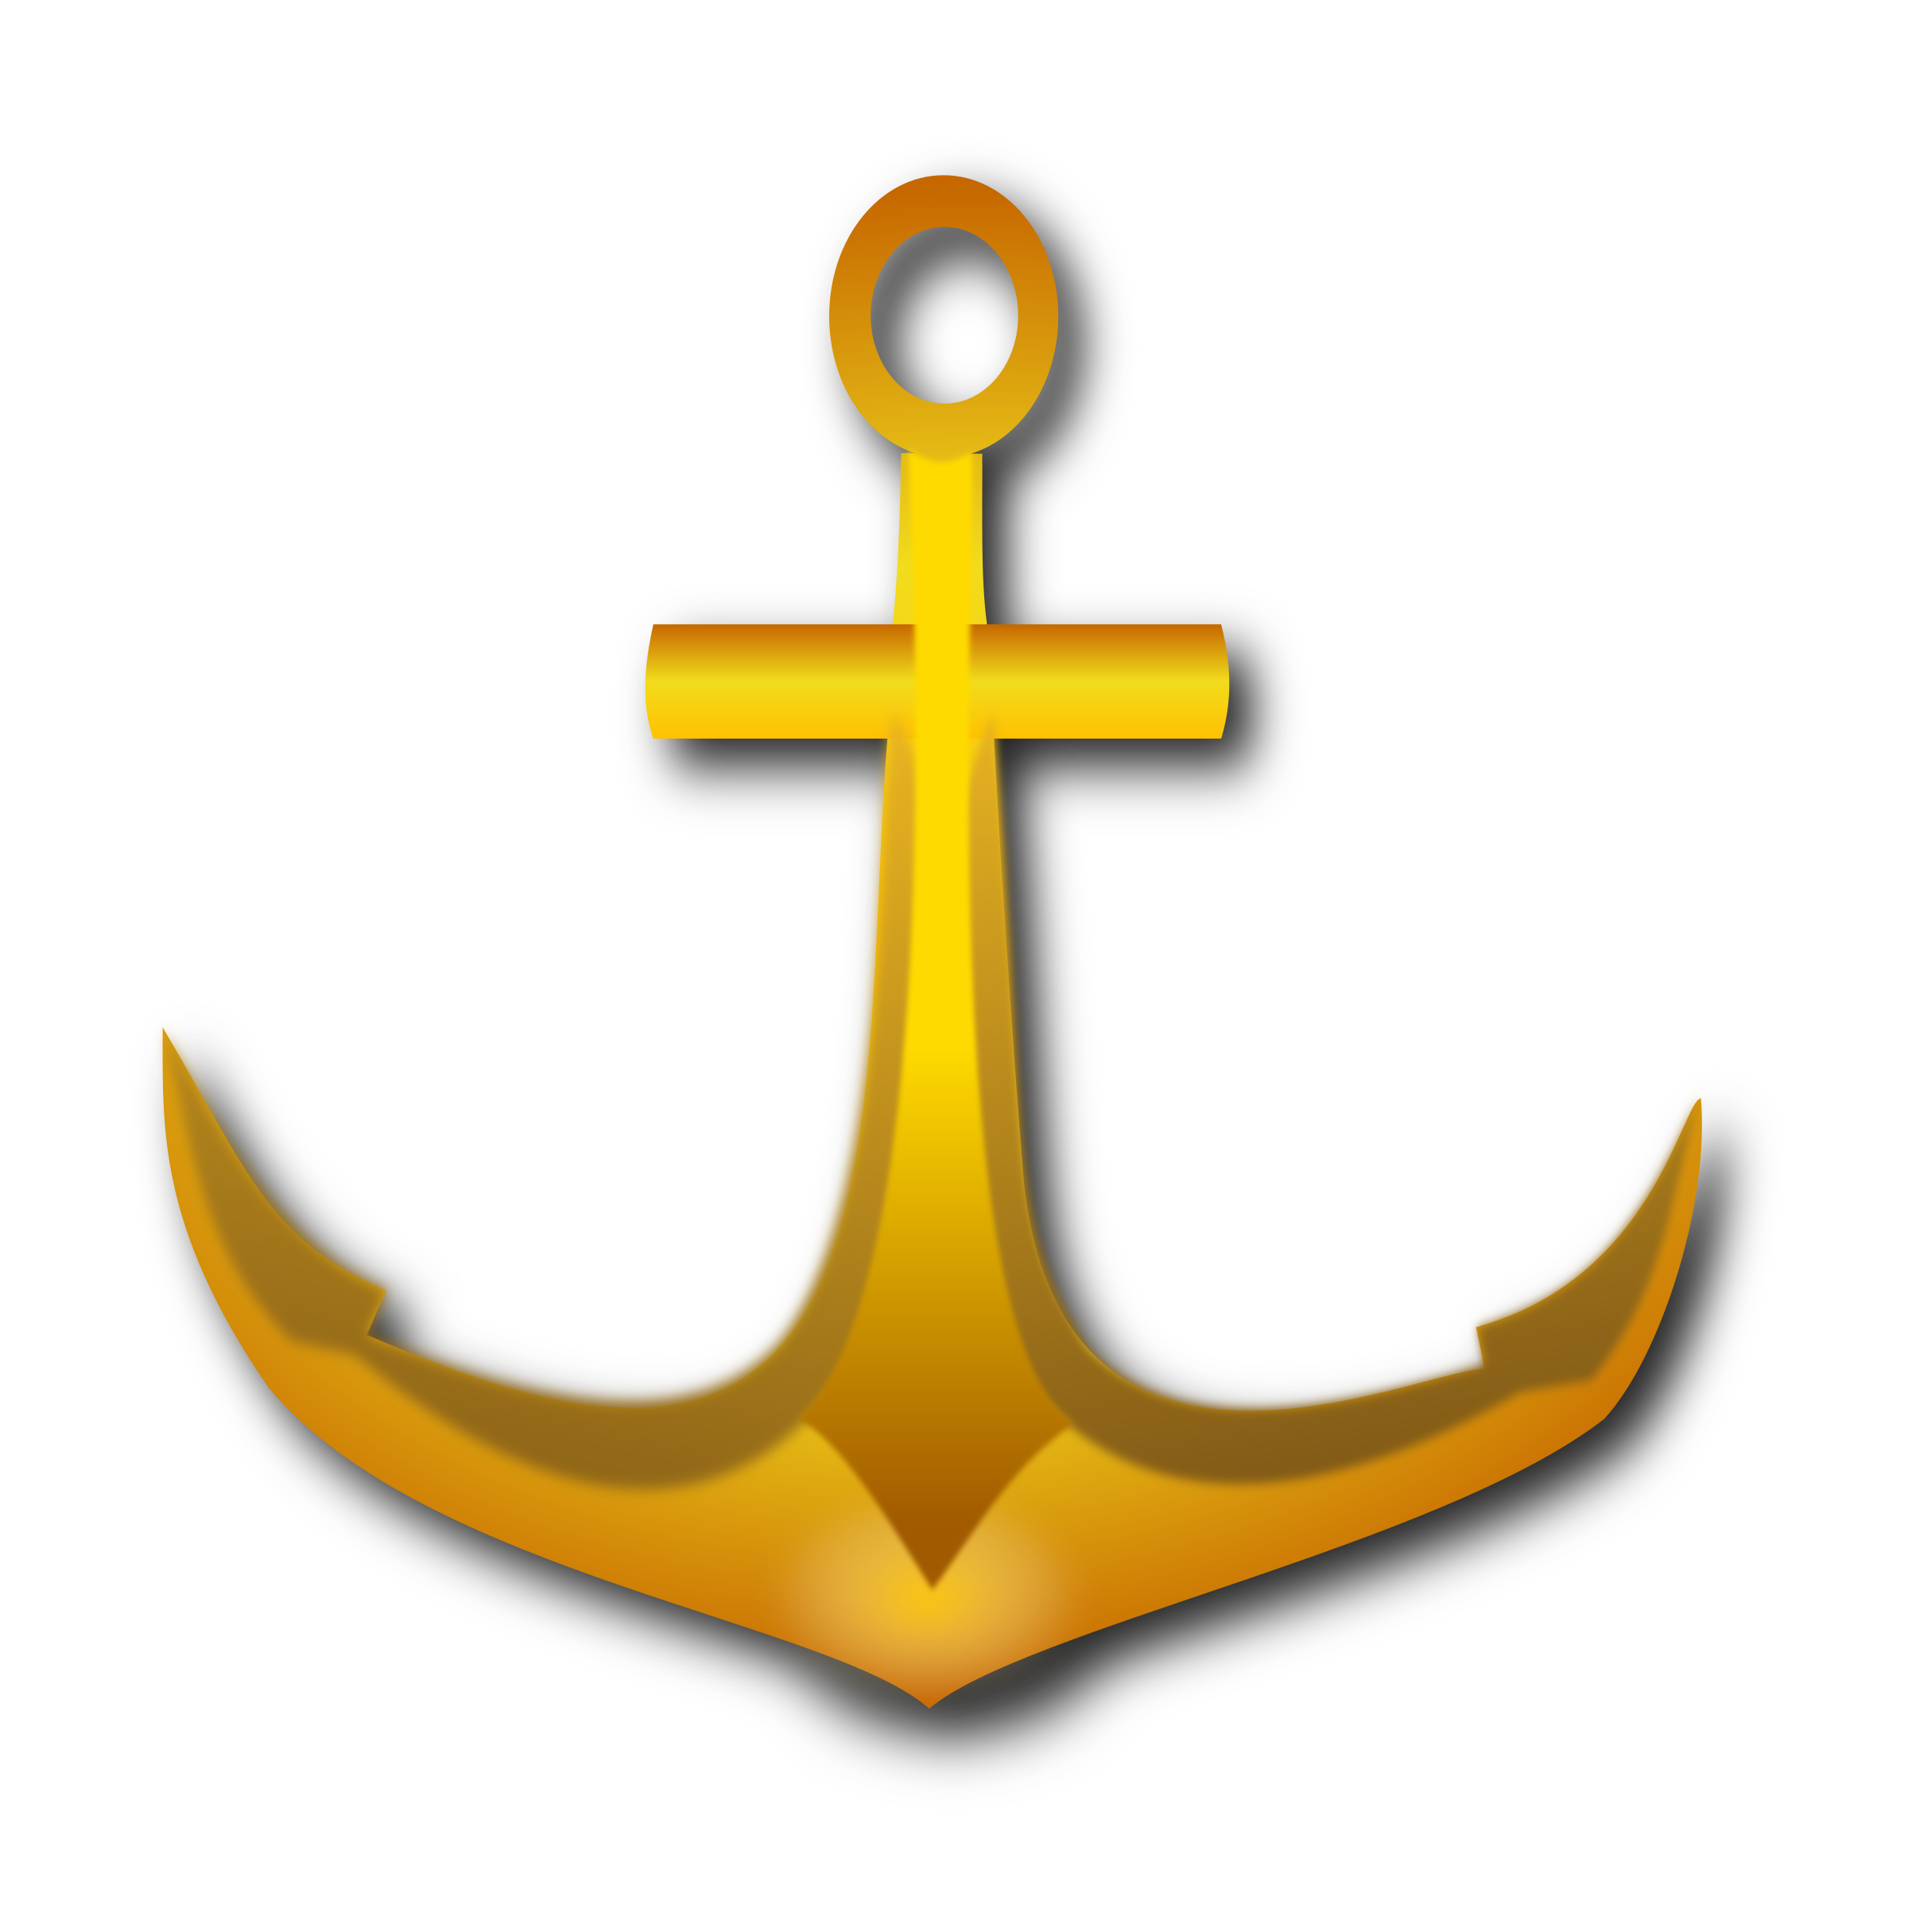 golden anchor by marauder